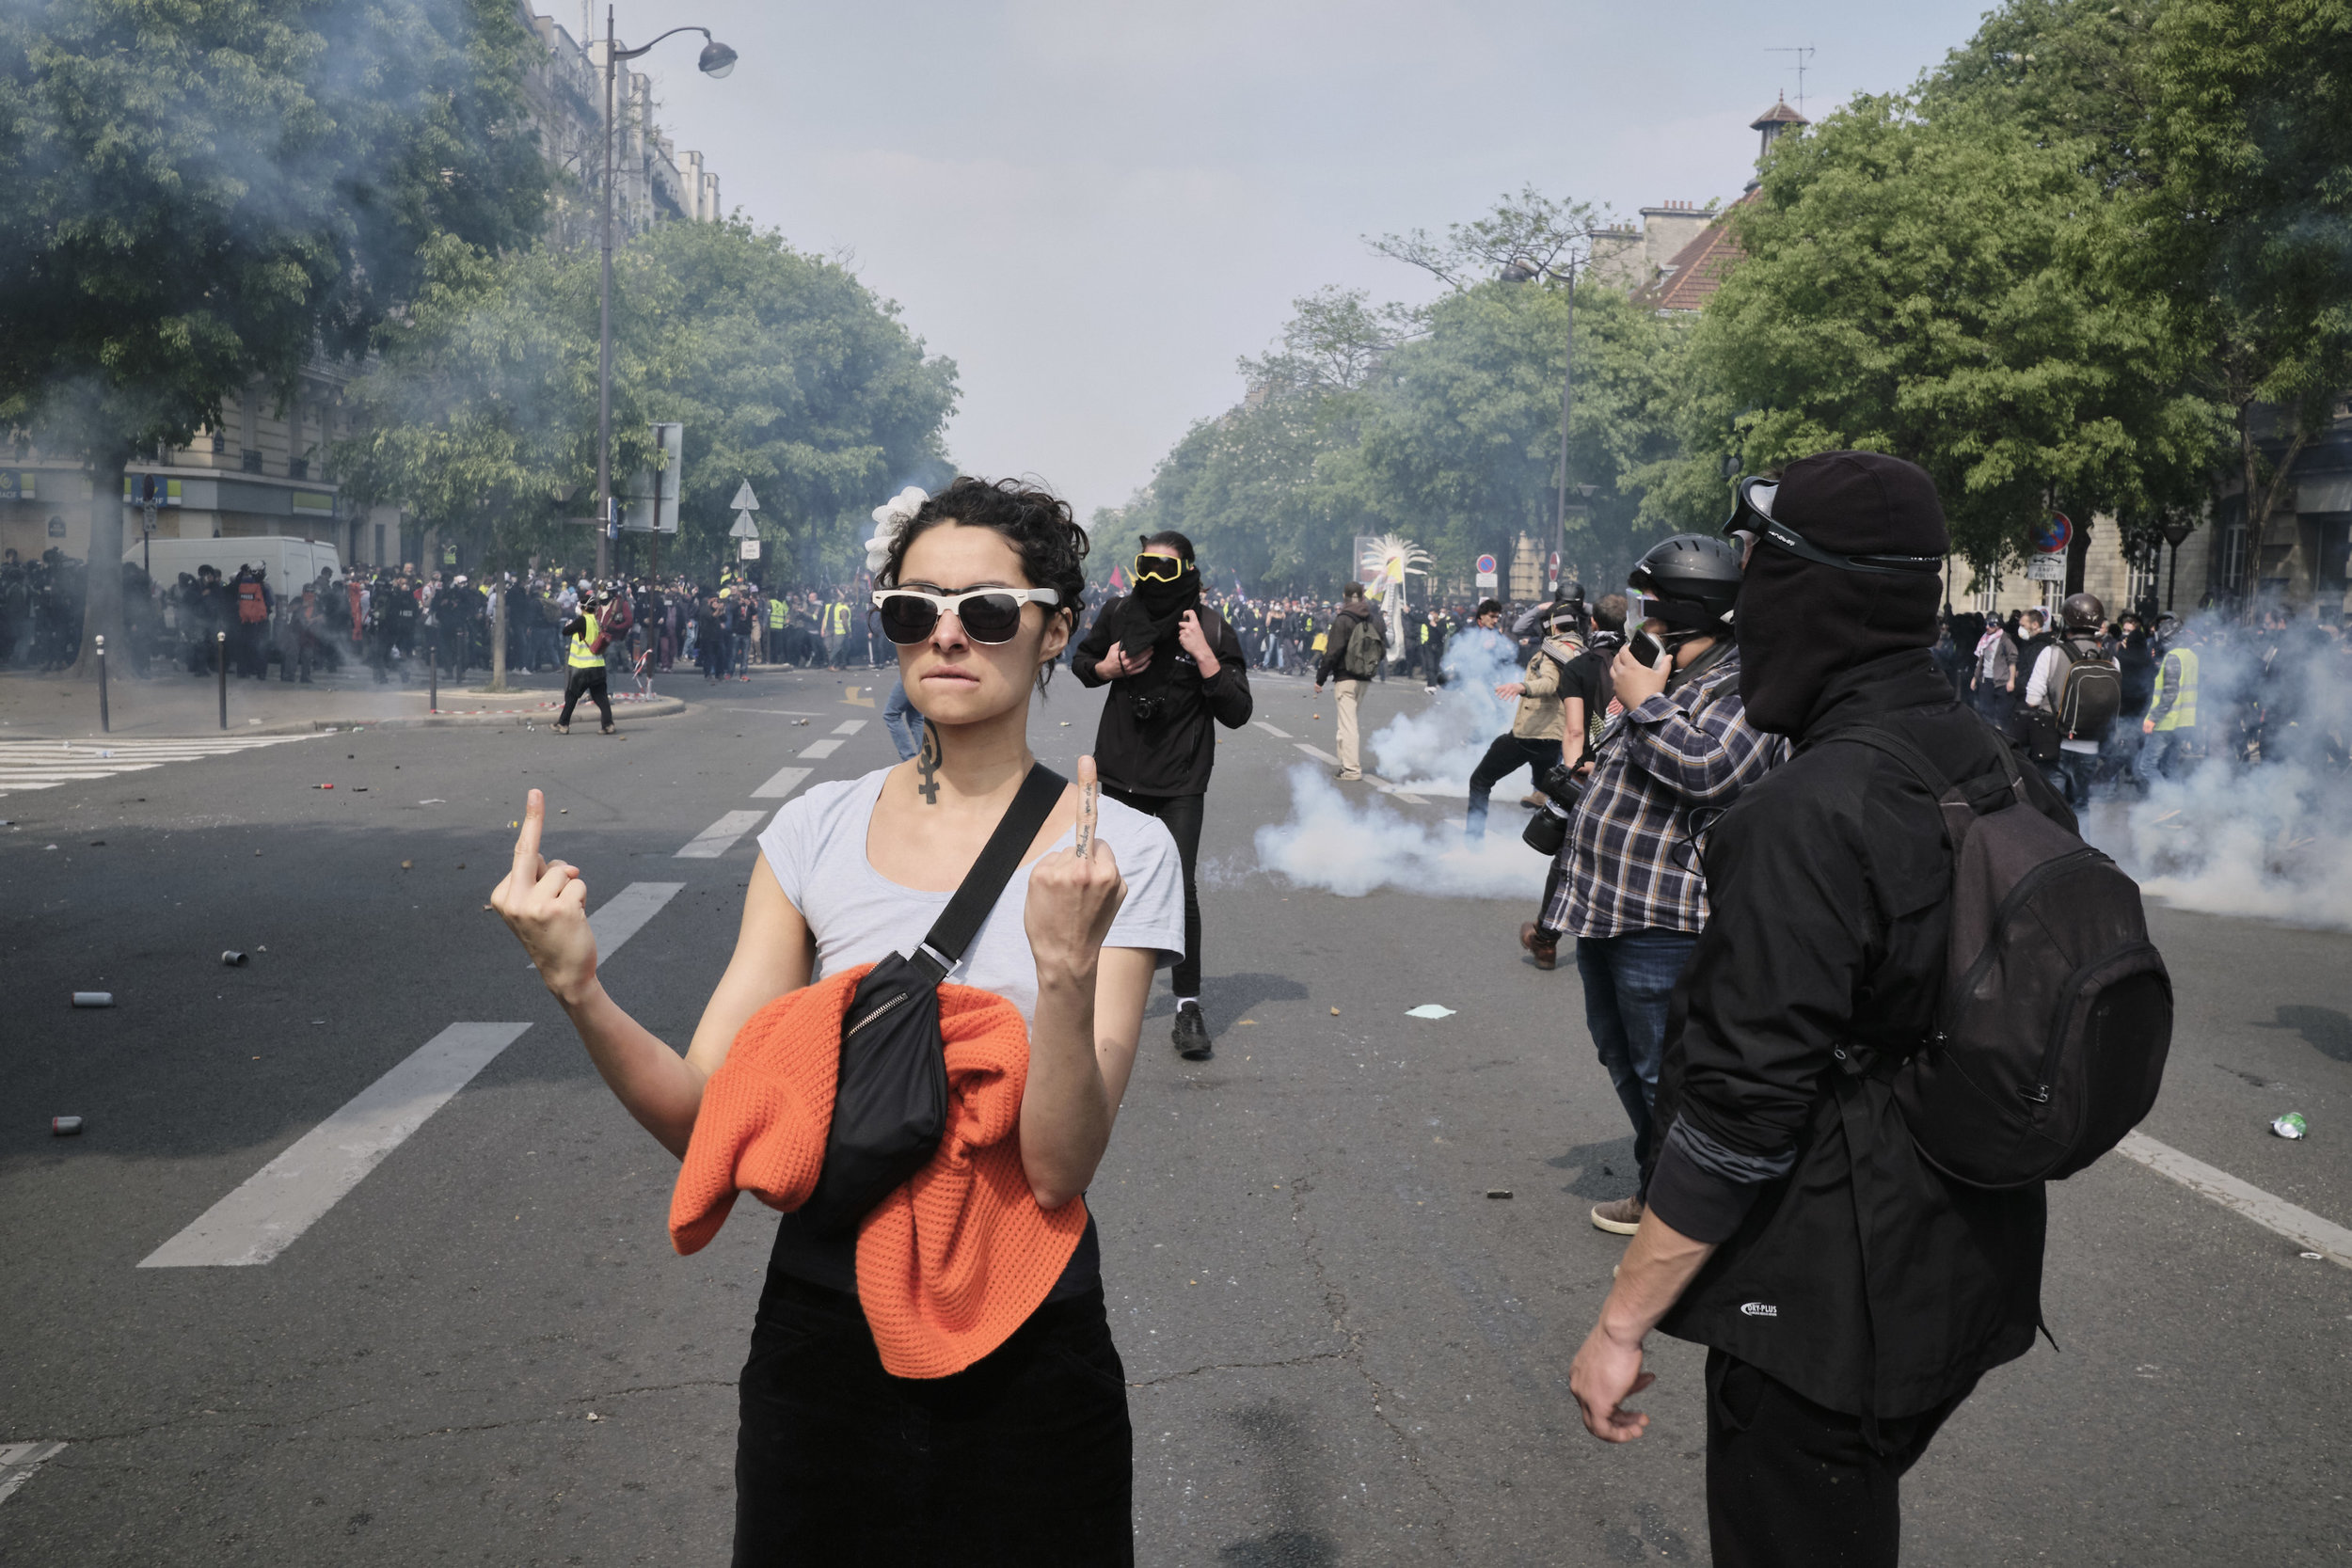 Angry protest participant showing the middle finger to the police after an attempt to control the crowd by using tear gas during the march to The Palace D'italie.